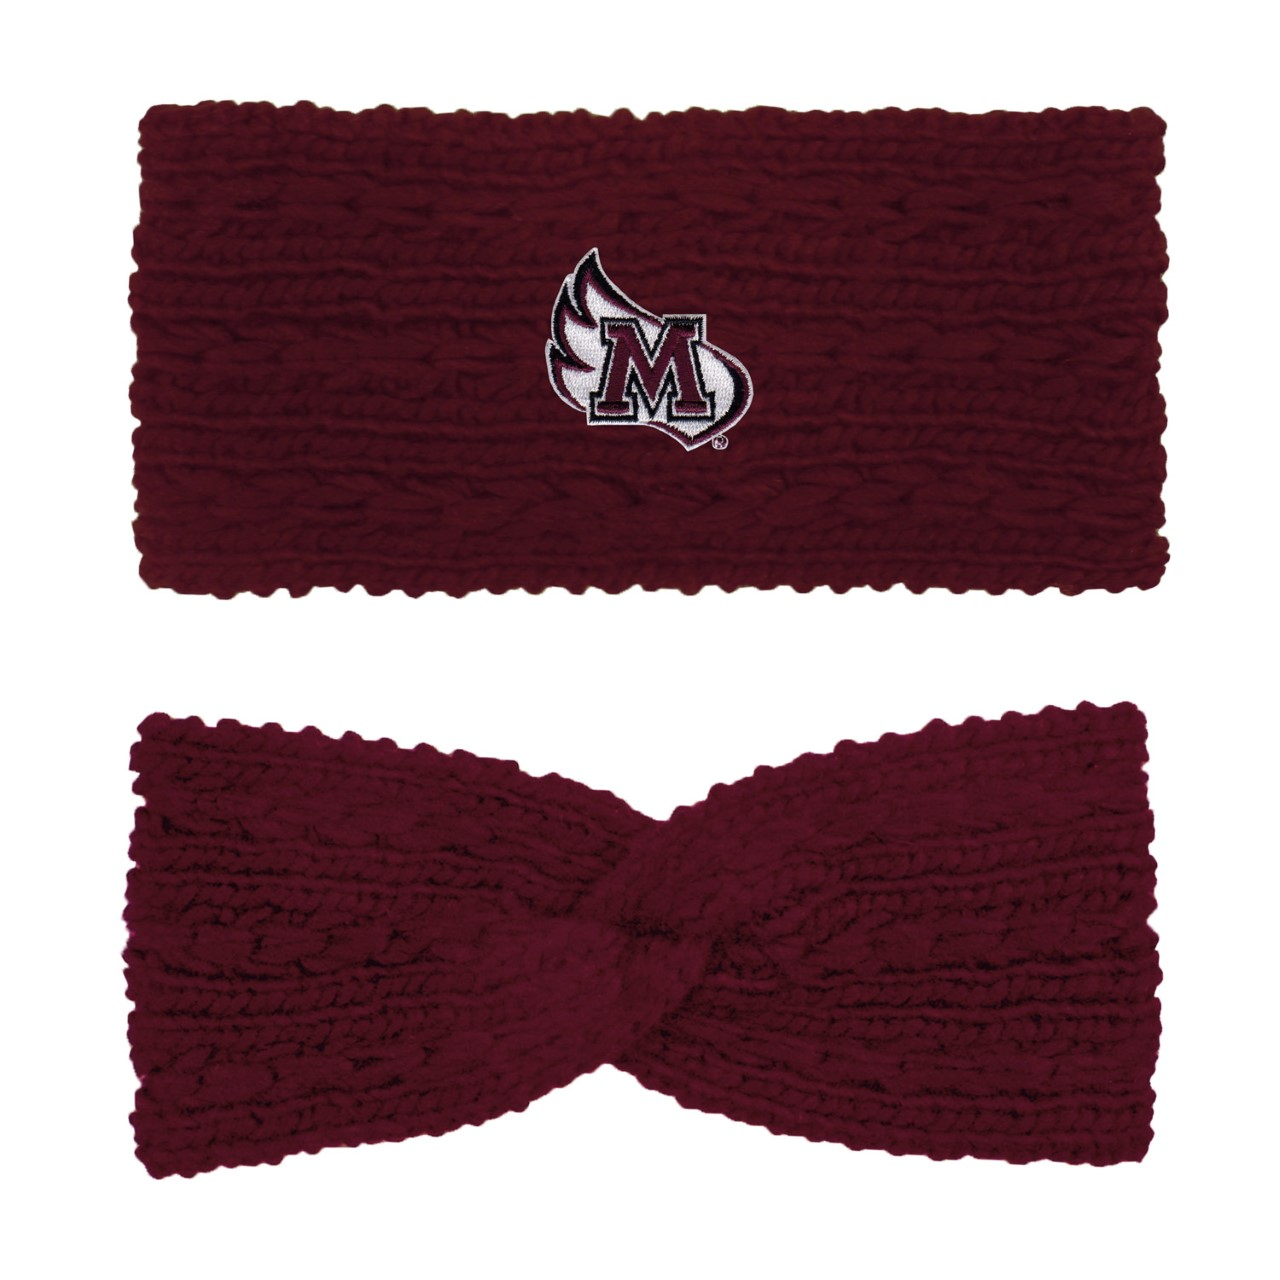 Image for the Knit Twist Ear Band, Burgundy product